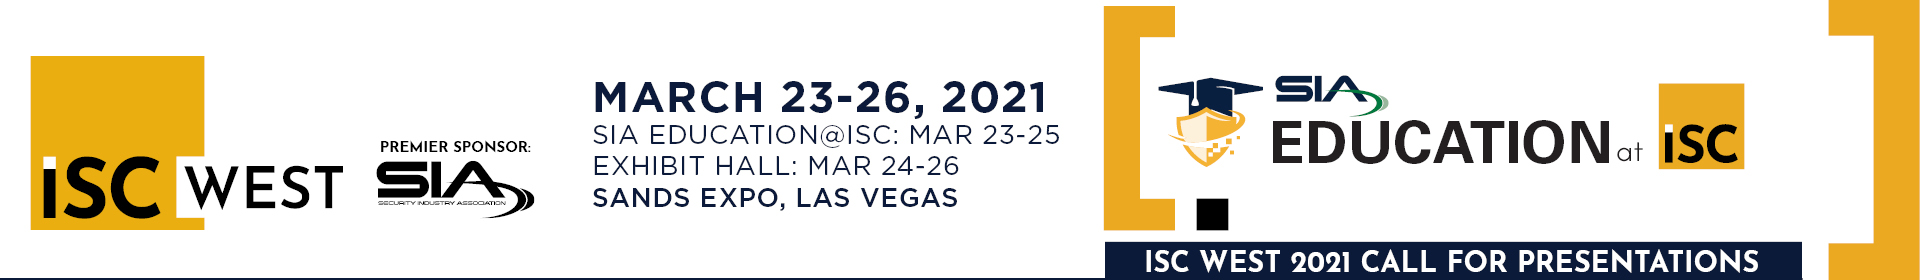 ISC West 2021 Event Banner